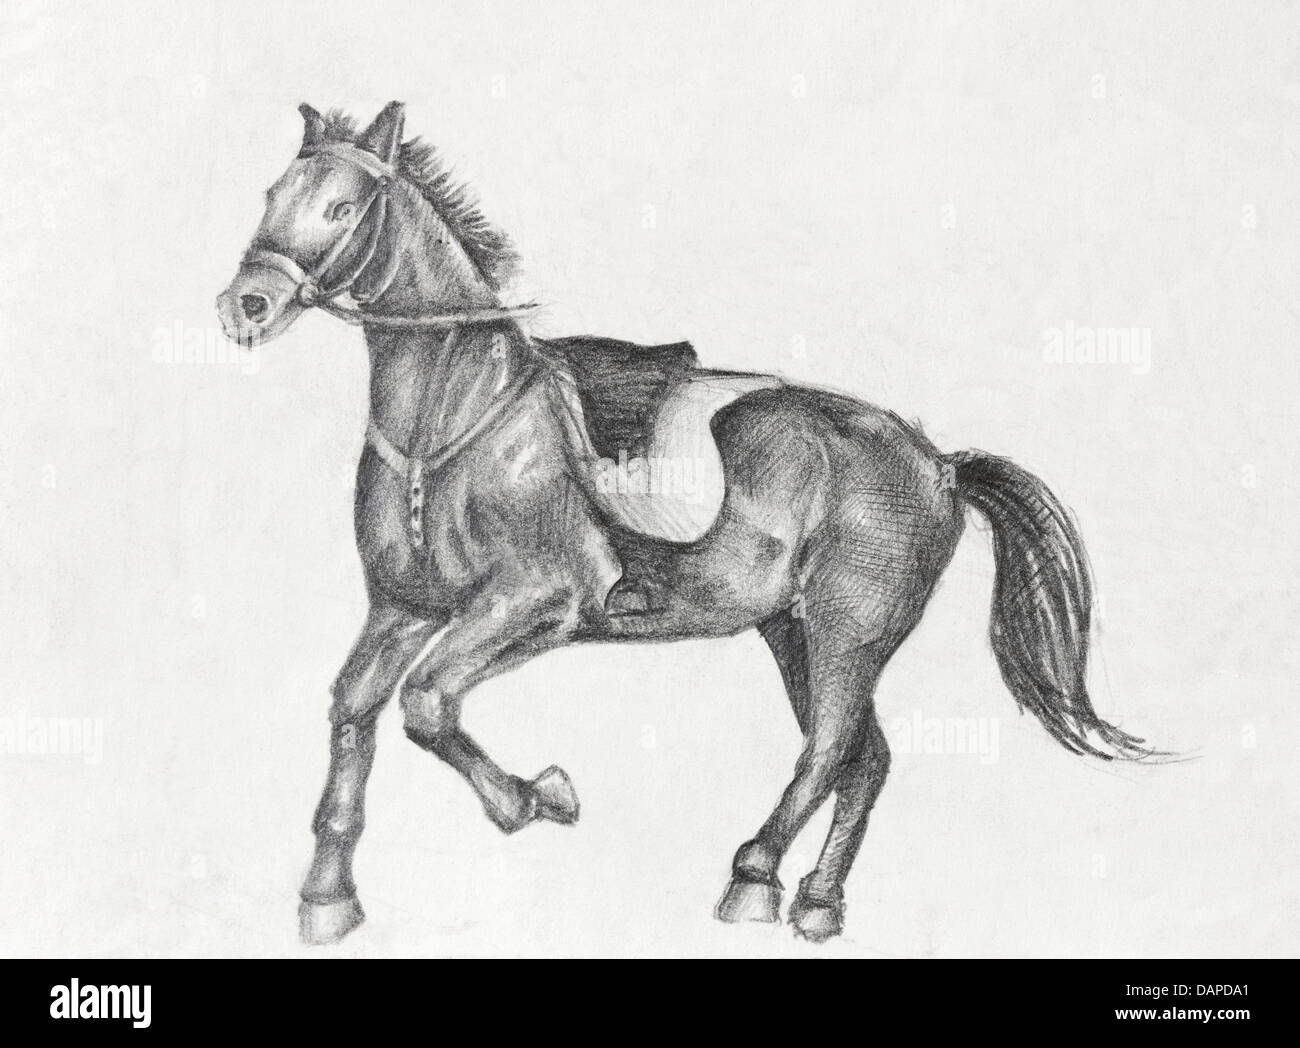 Horse Sketch High Resolution Stock Photography And Images Alamy